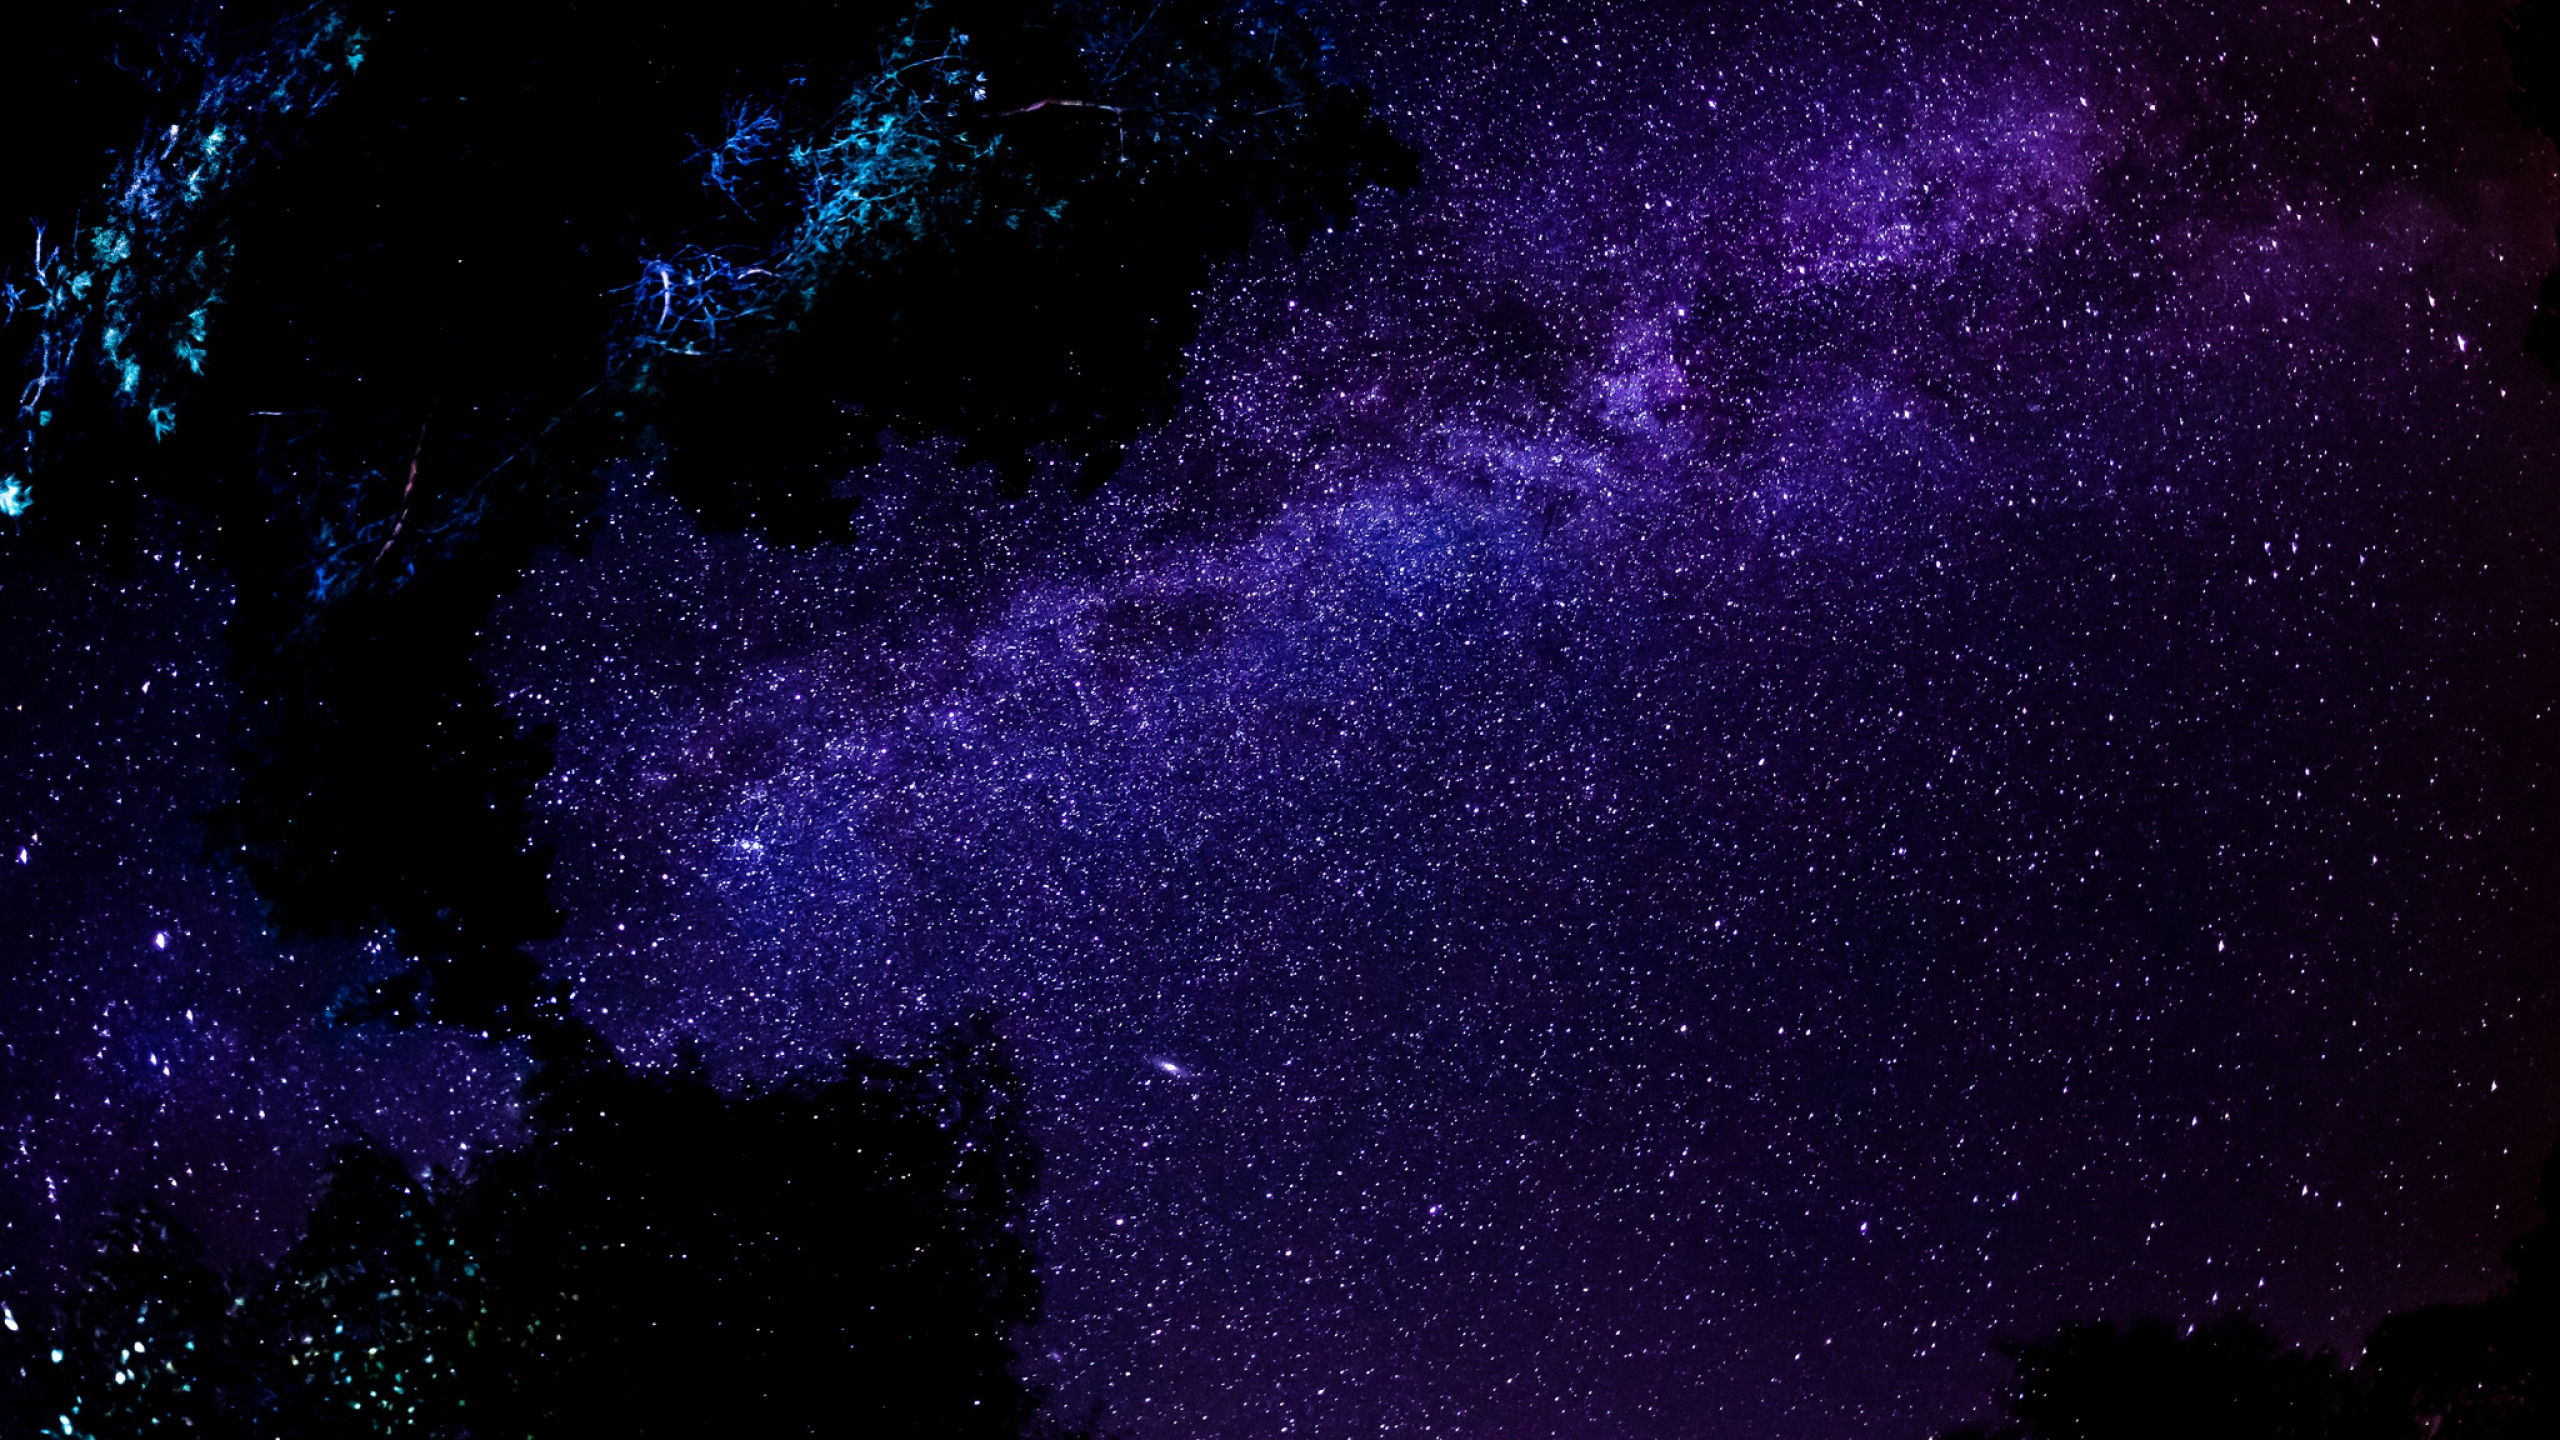 night sky wallpapers hd - photo #7